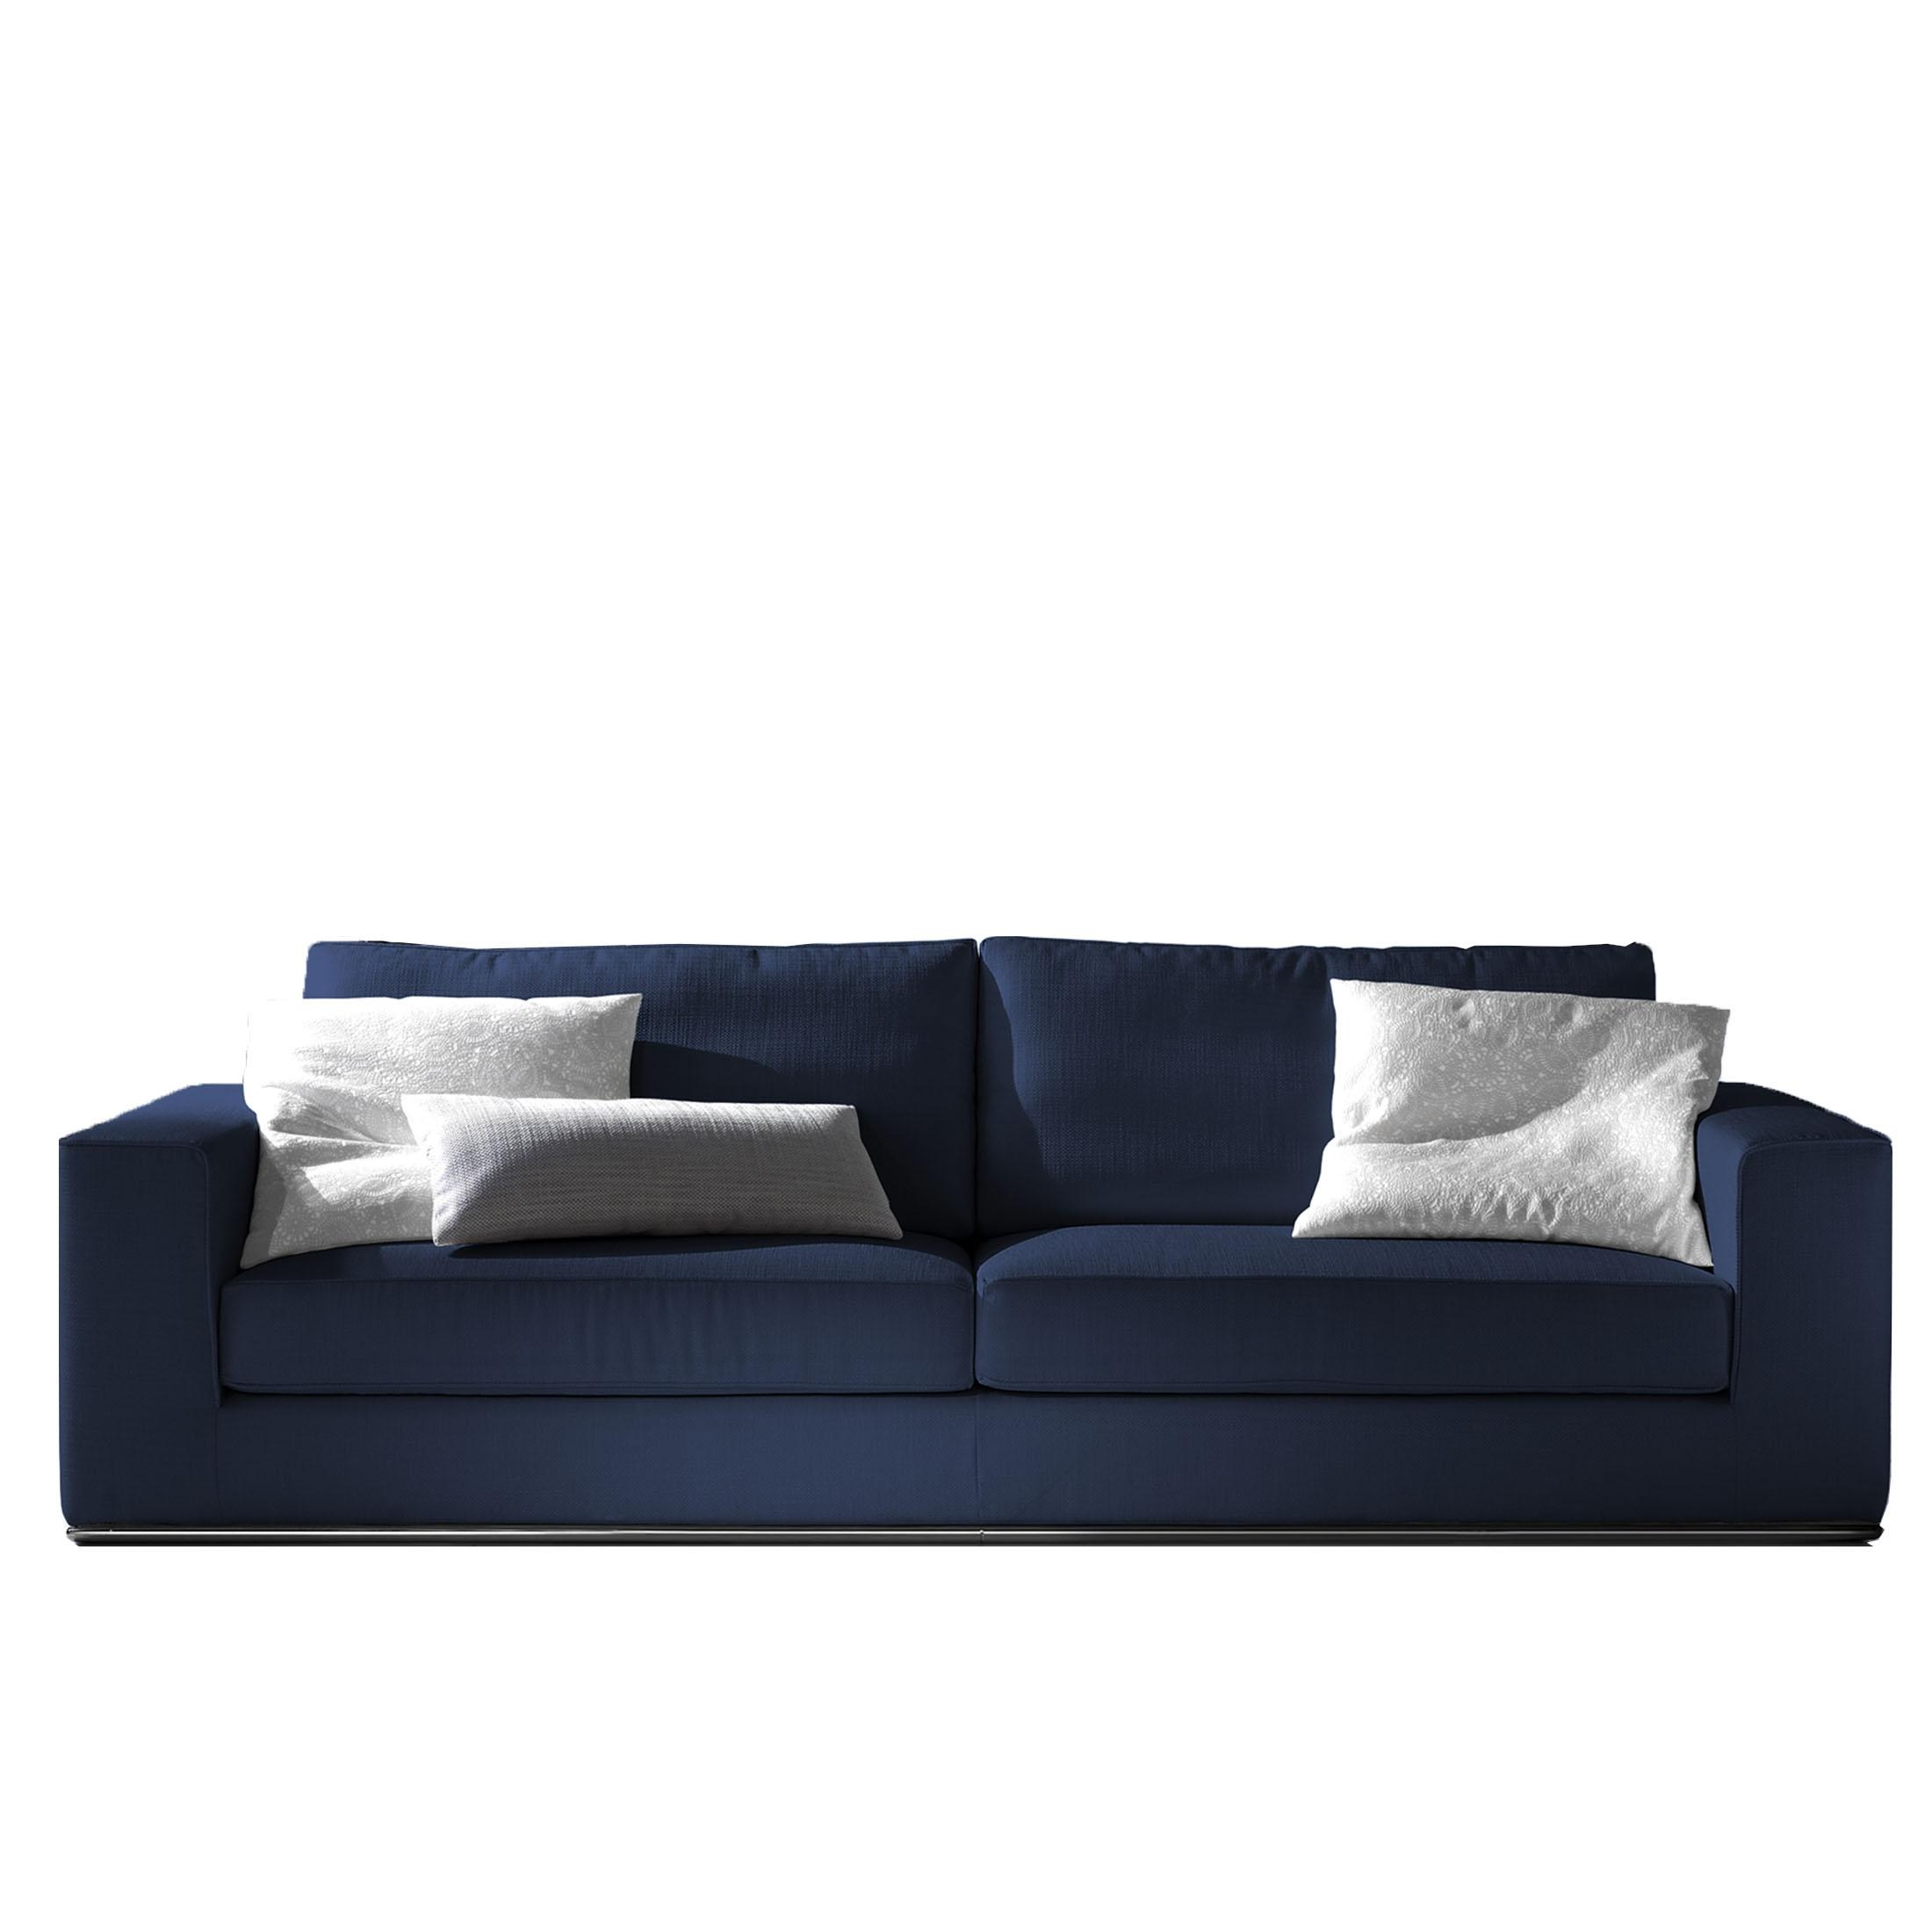 Karma 3 Seater Modular Sofa Available In Different Compositions Pertaining To Modern 3 Seater Sofas (View 8 of 20)